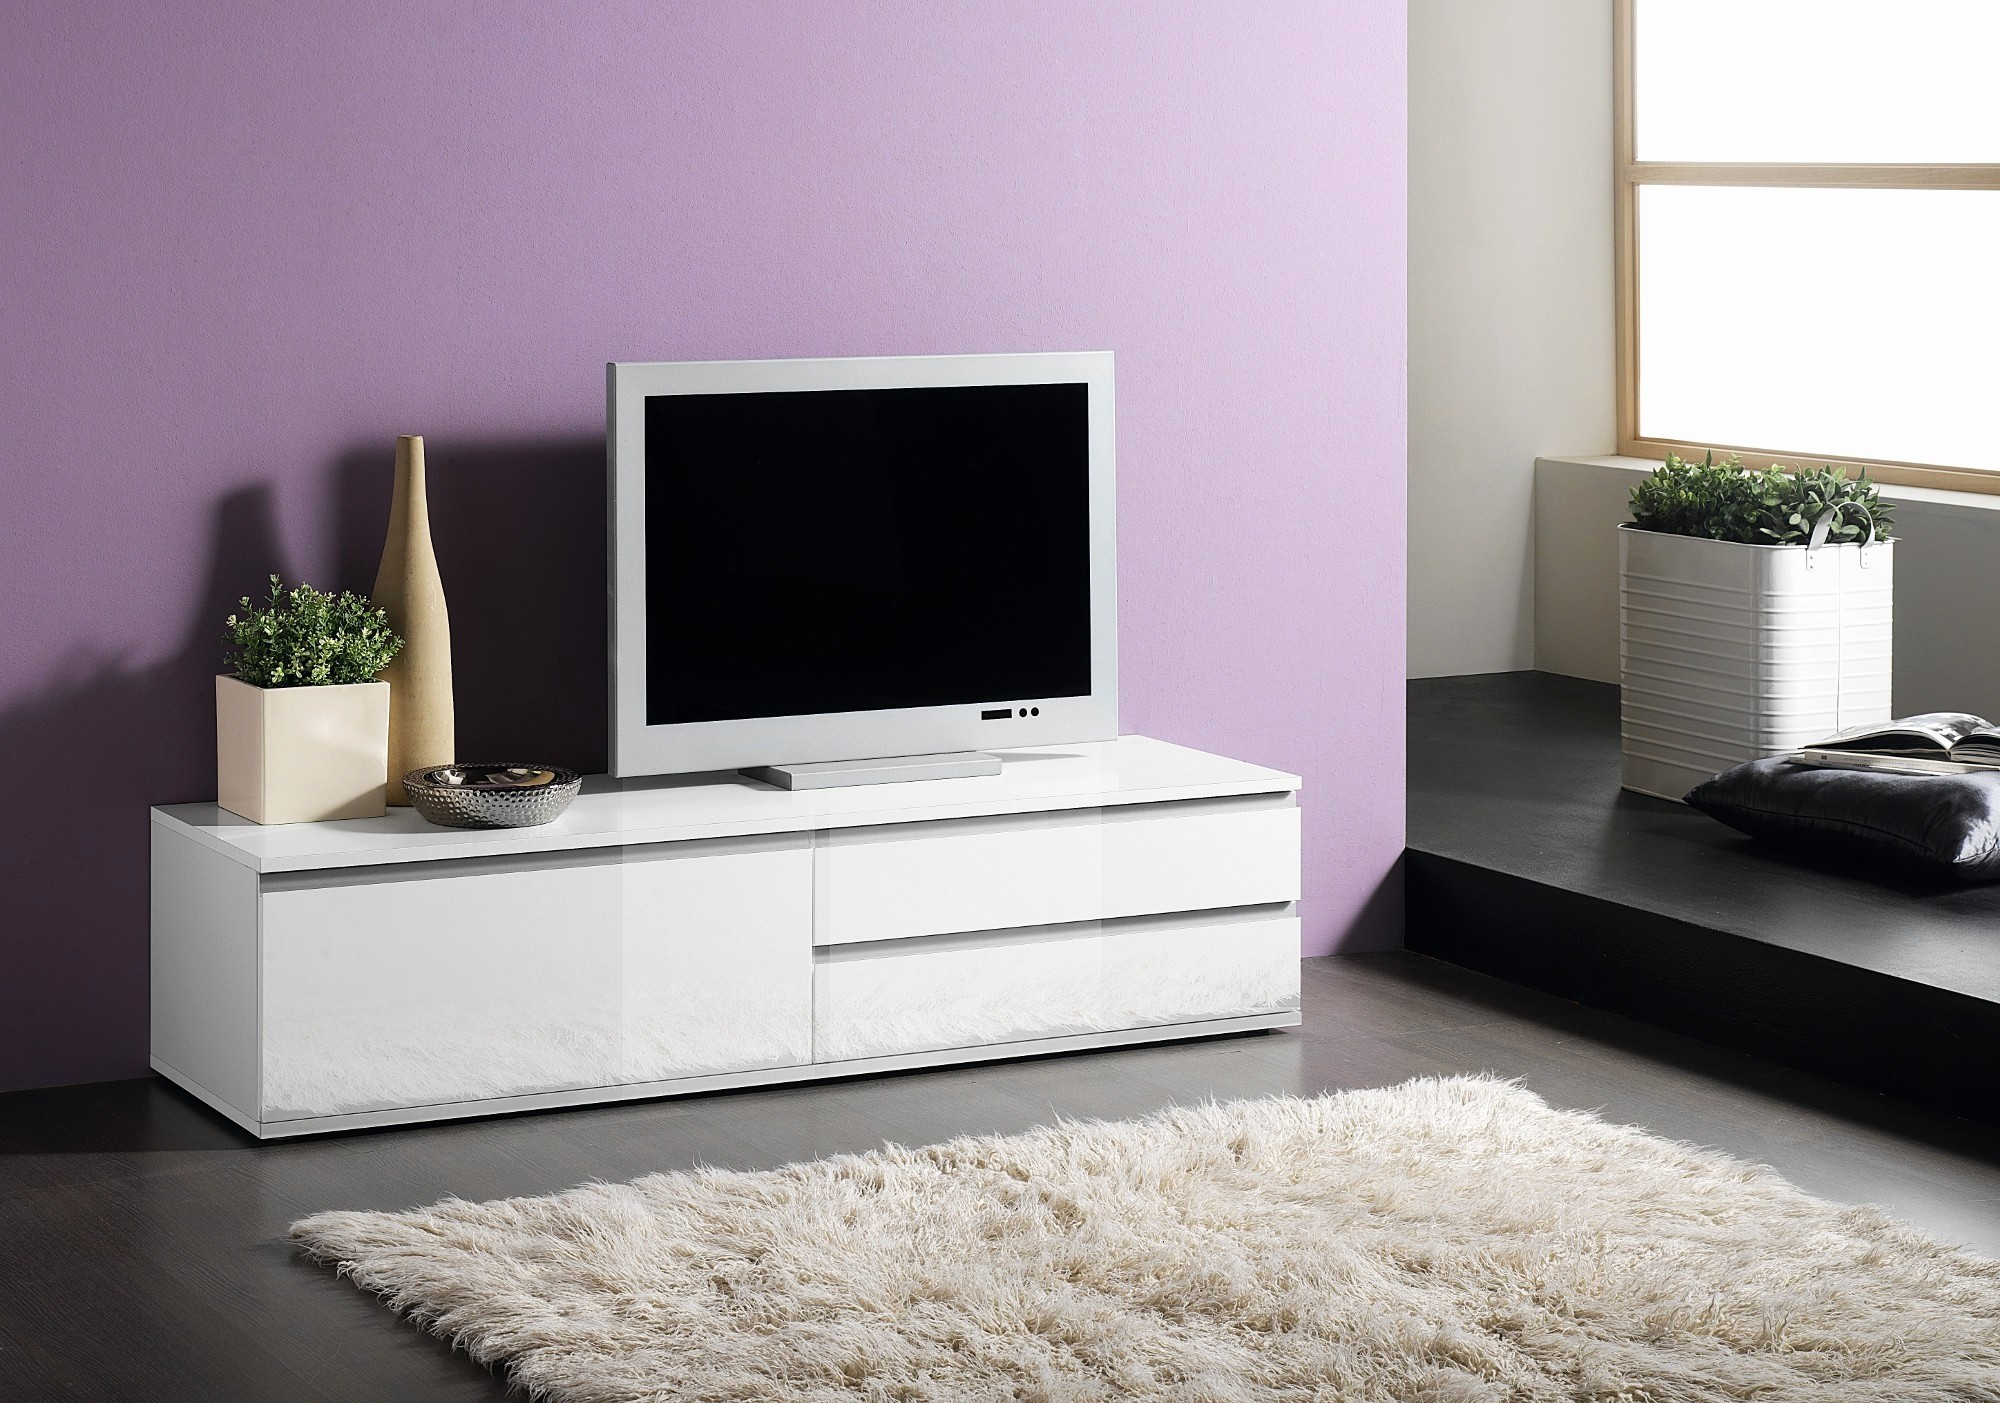 Meuble T L Design Meilleur De Meuble Tv Design Blanc Beautiful  # Meuble Tele Design Laque Blanc